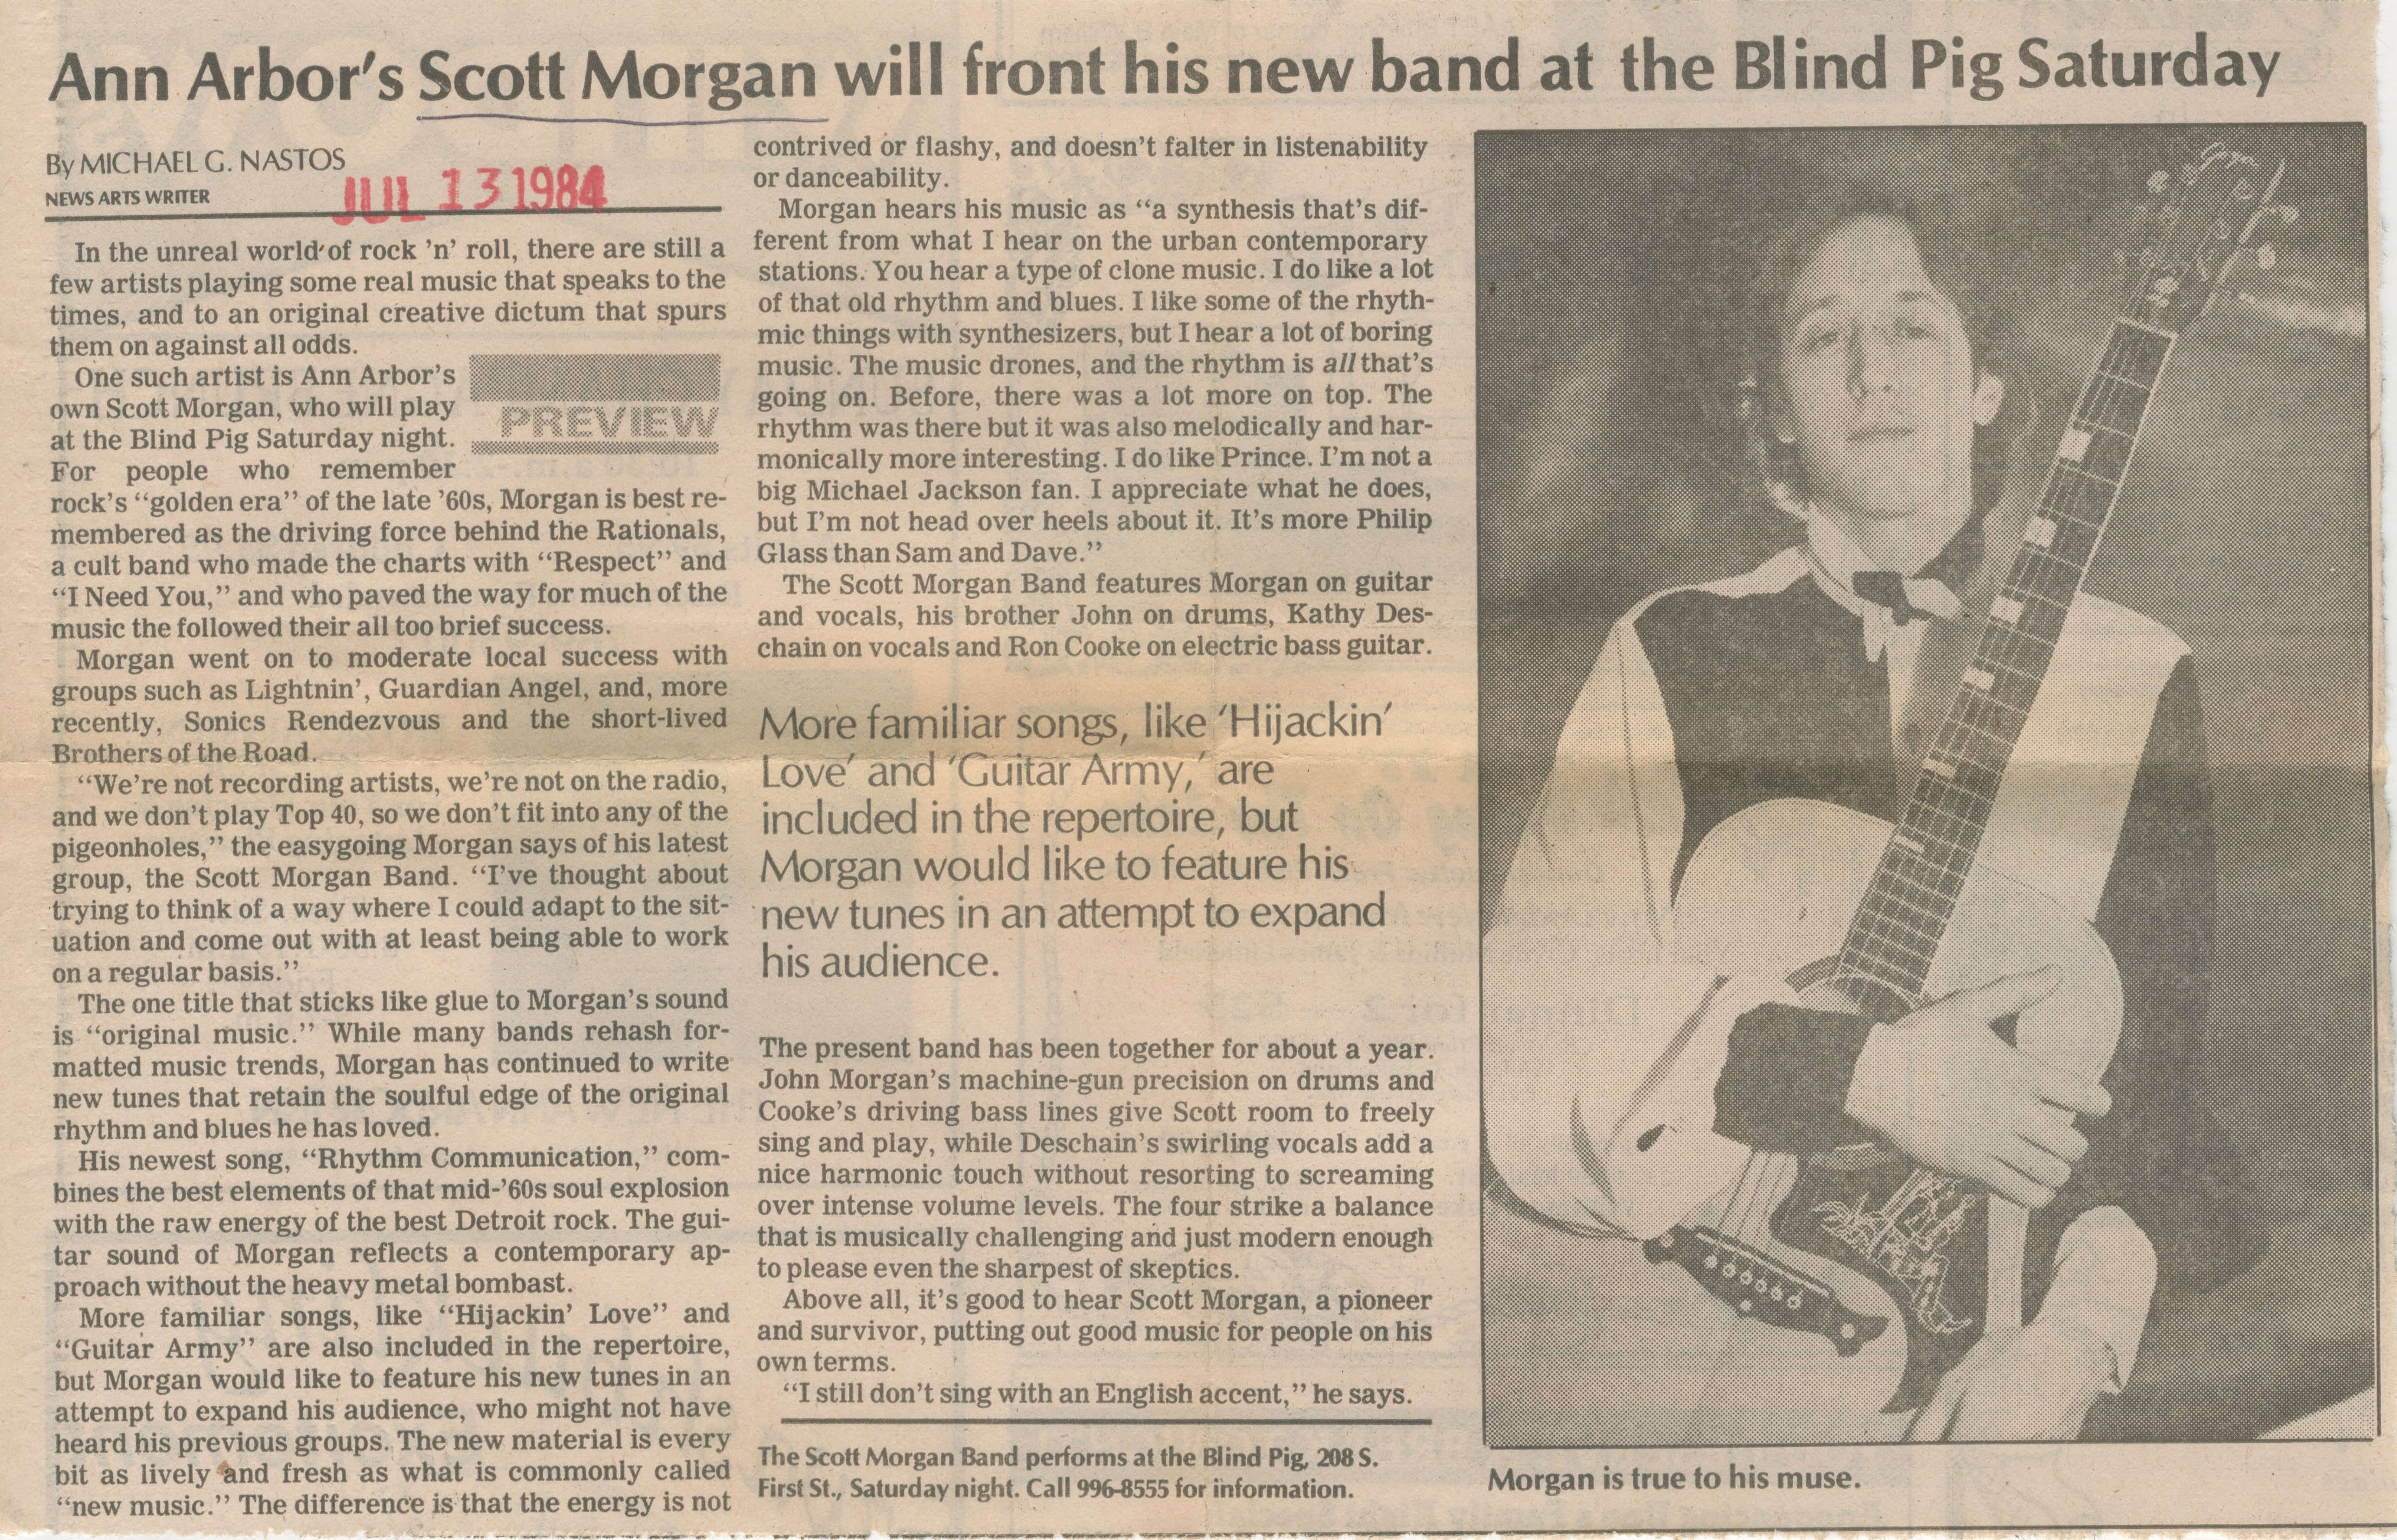 Ann Arbor's Scott Morgan Will Front His New Band At The Blind Pig Saturday image